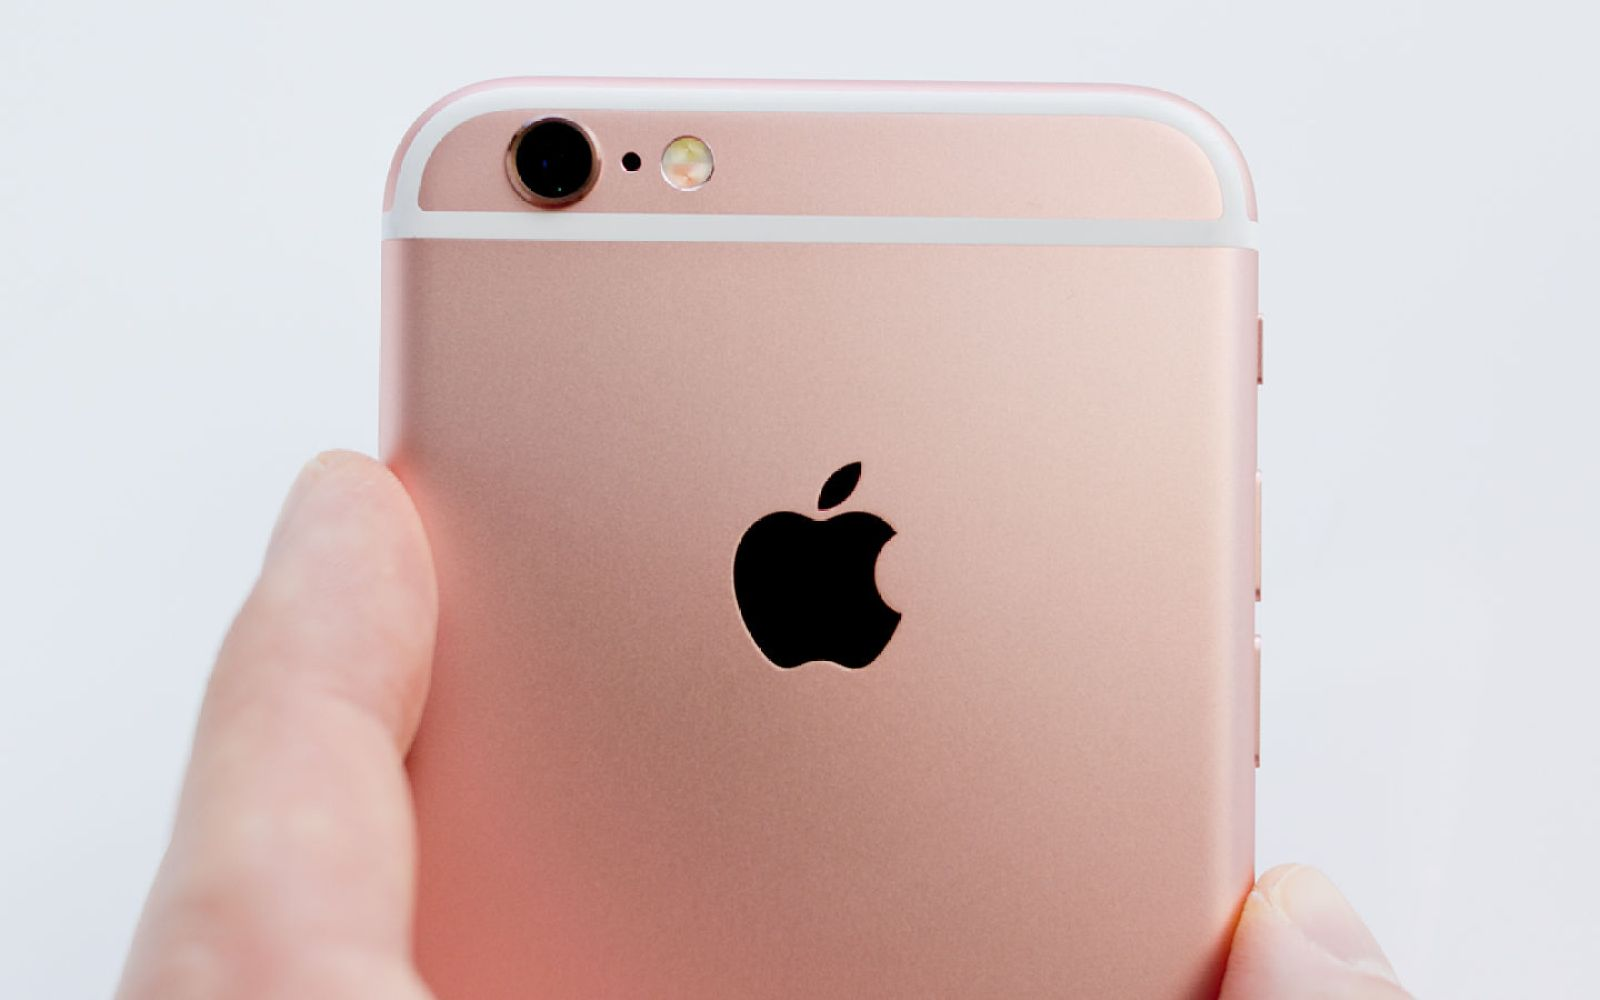 Rose Gold coming to iPhone 5se like iPhone 6s, not 'bright pink', plus next iPads & MacBooks